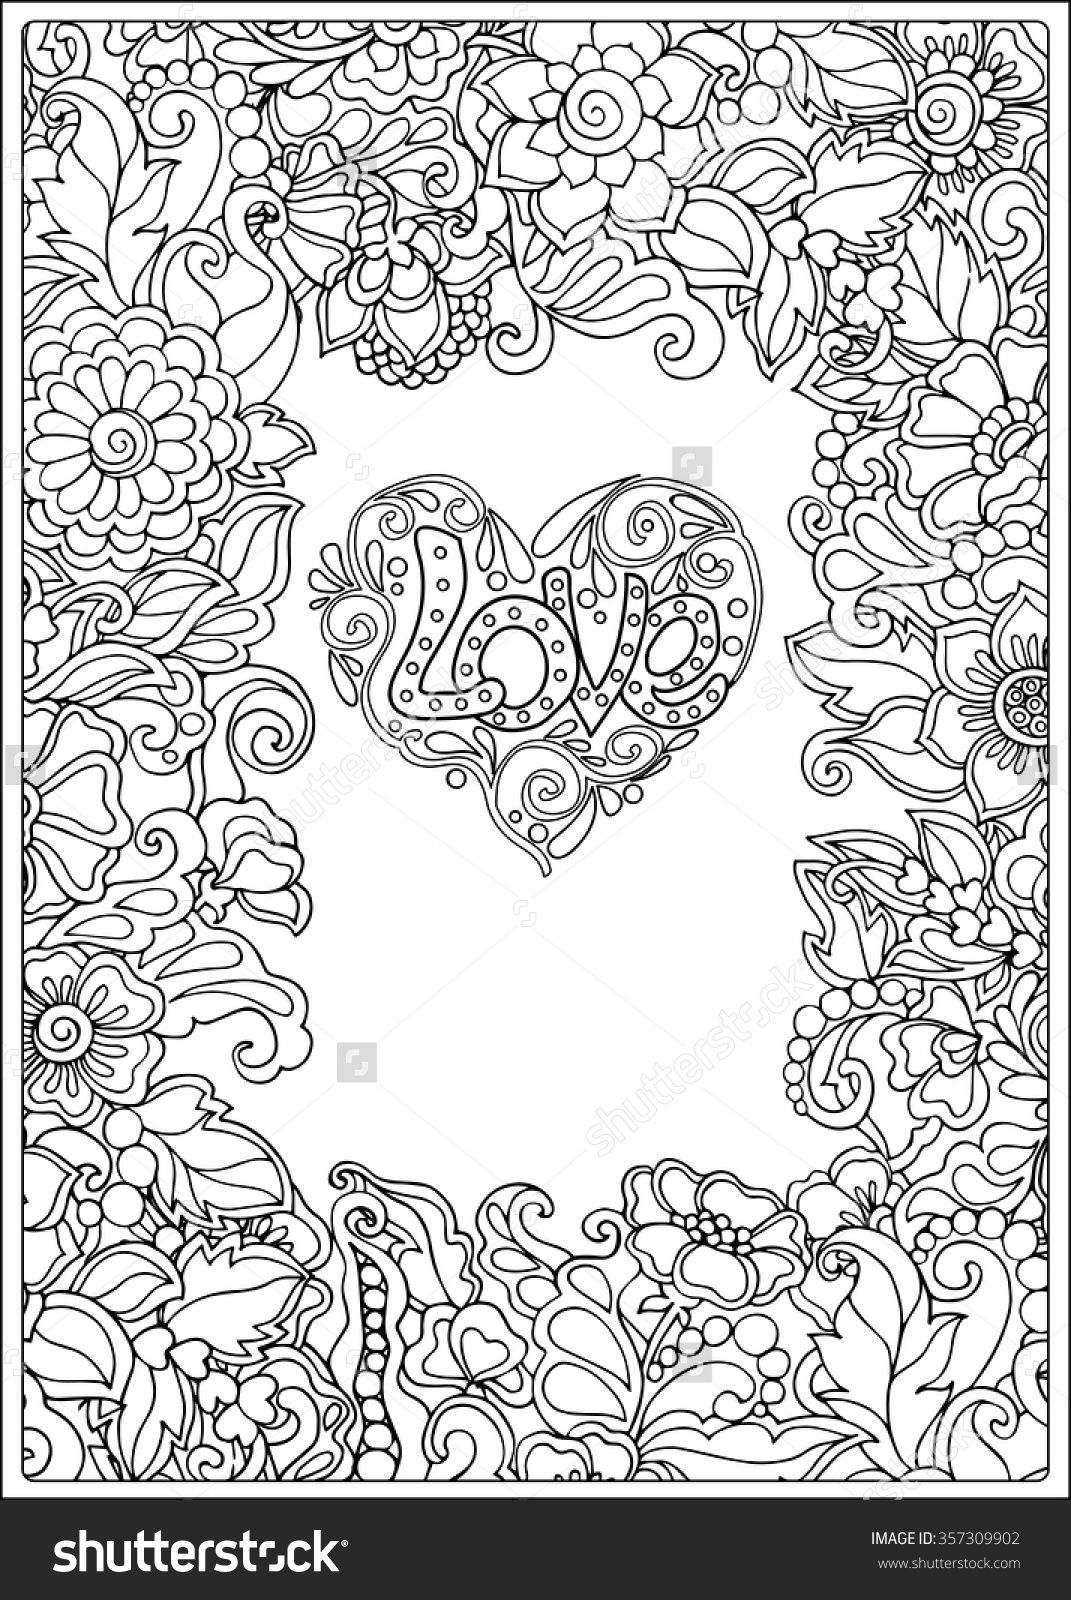 Decorative Love Heart With Flowers. Valentines Day Card. Coloring ...